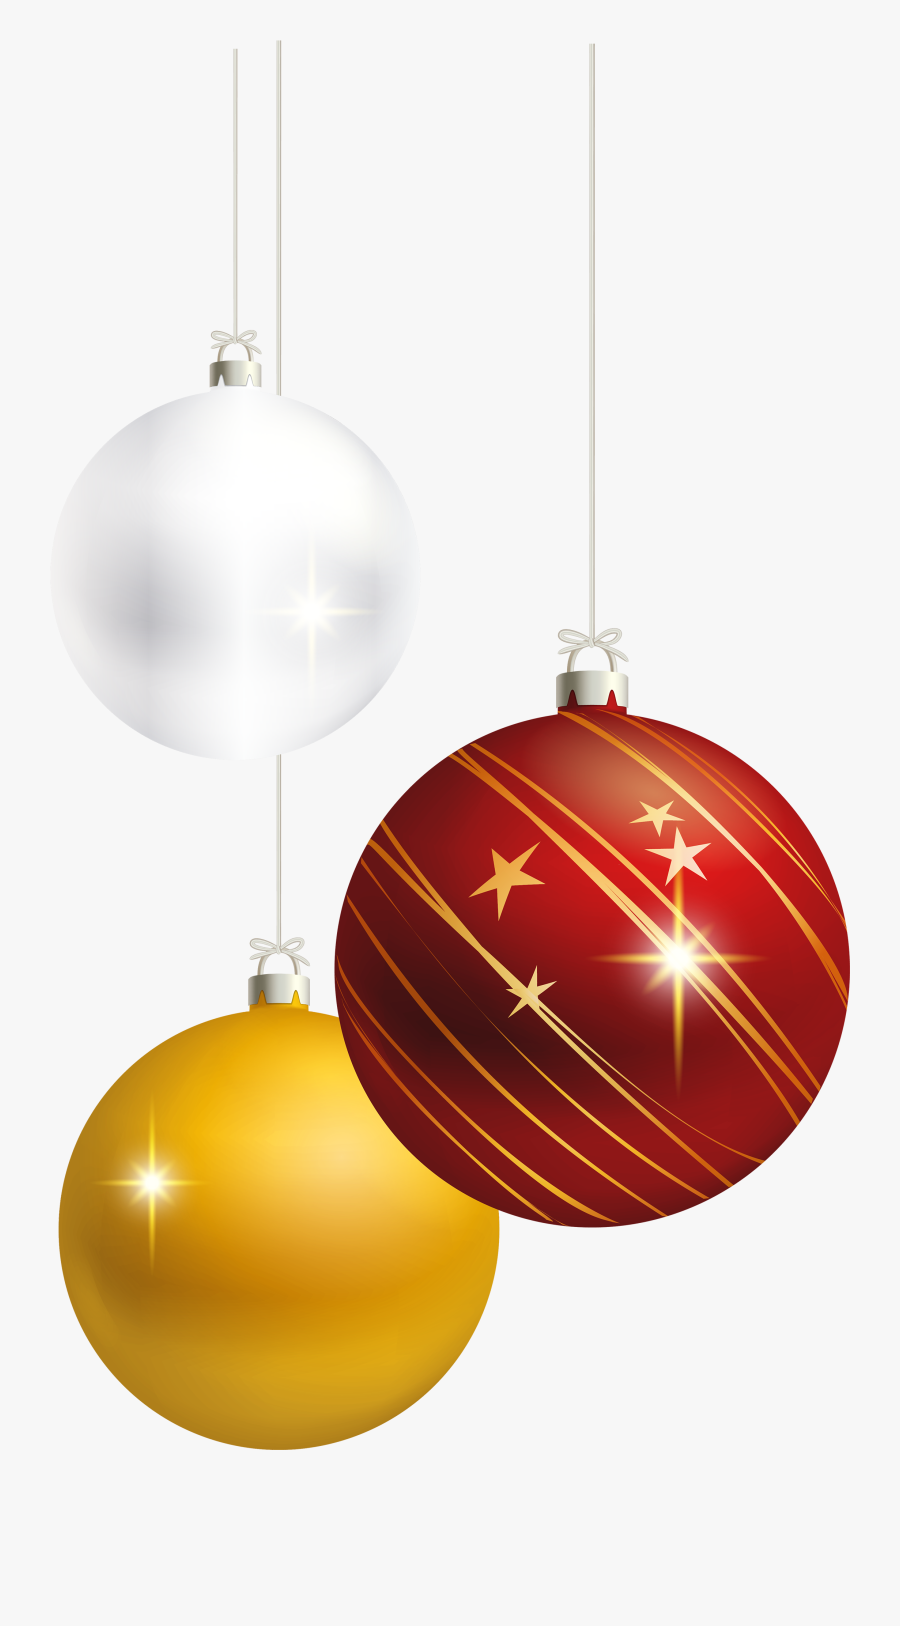 Christmas Ball Png Clipart - Transparent Christmas Ball Png, Transparent Clipart